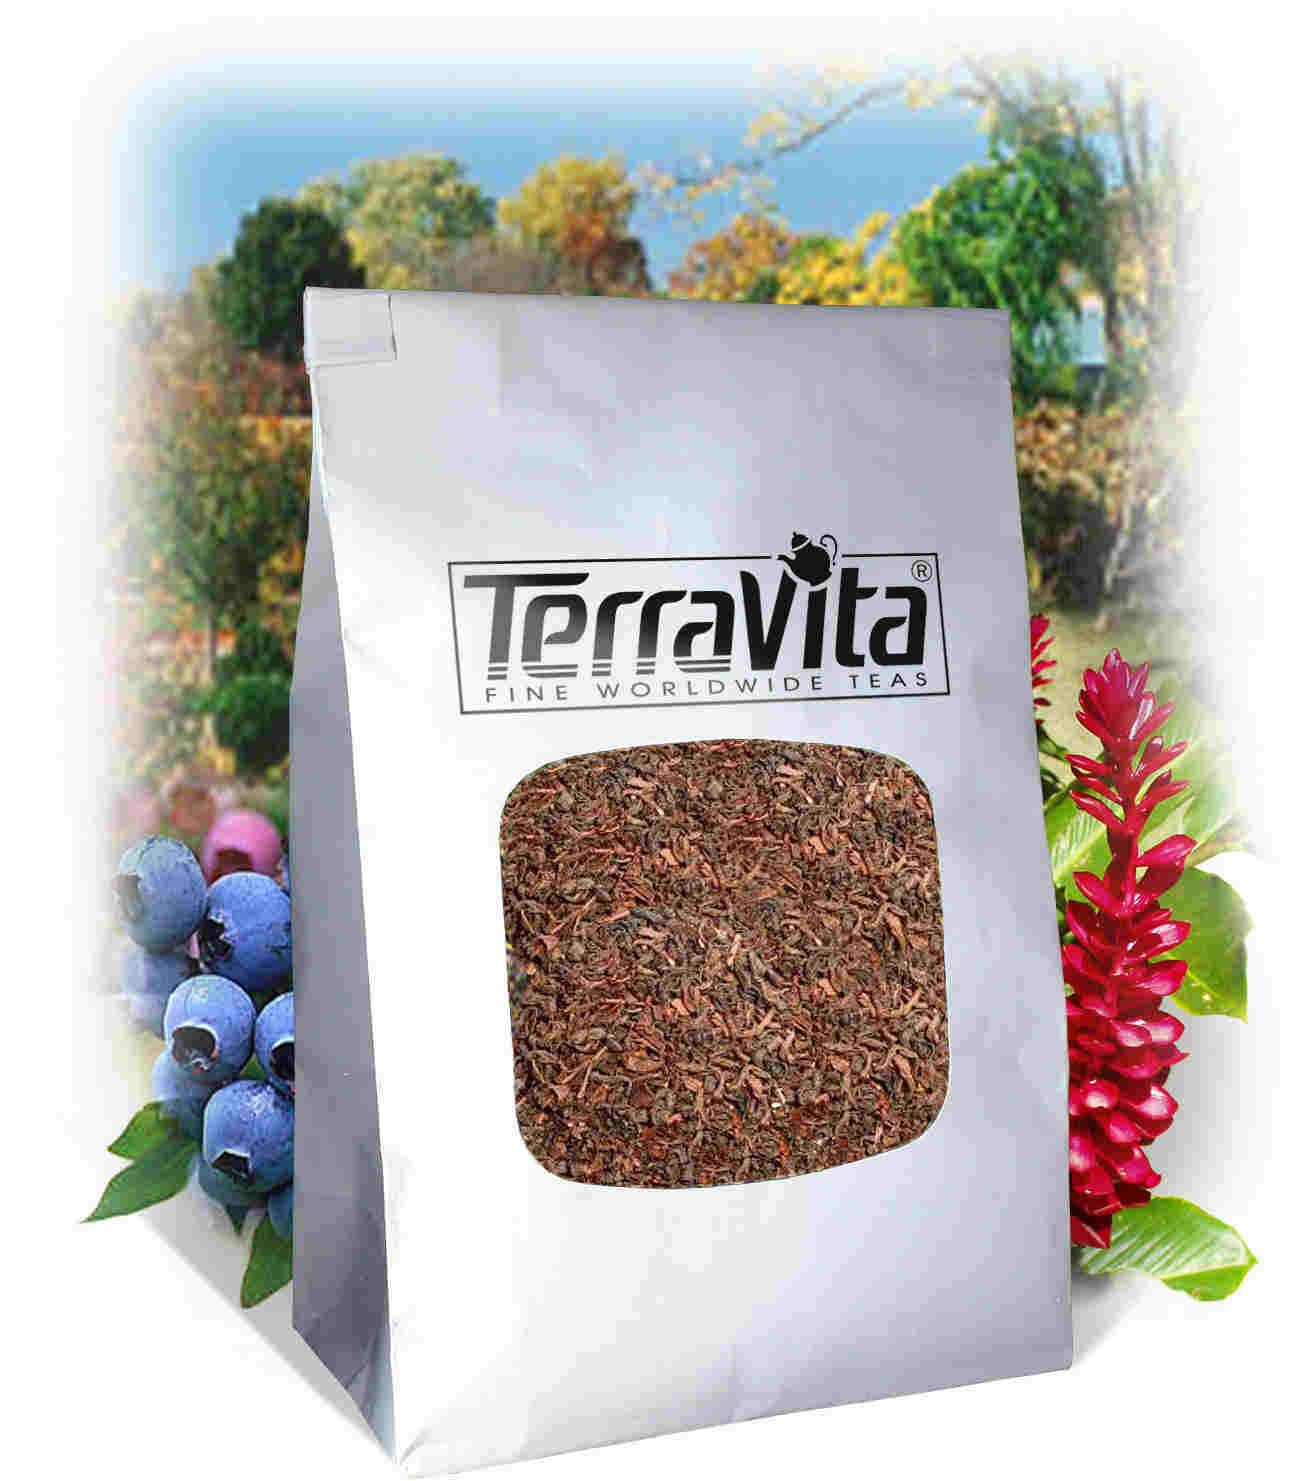 SEAL limited product Anise Seed Tea Loose 8 oz 427713 Free shipping on posting reviews 2 Pack - ZIN: